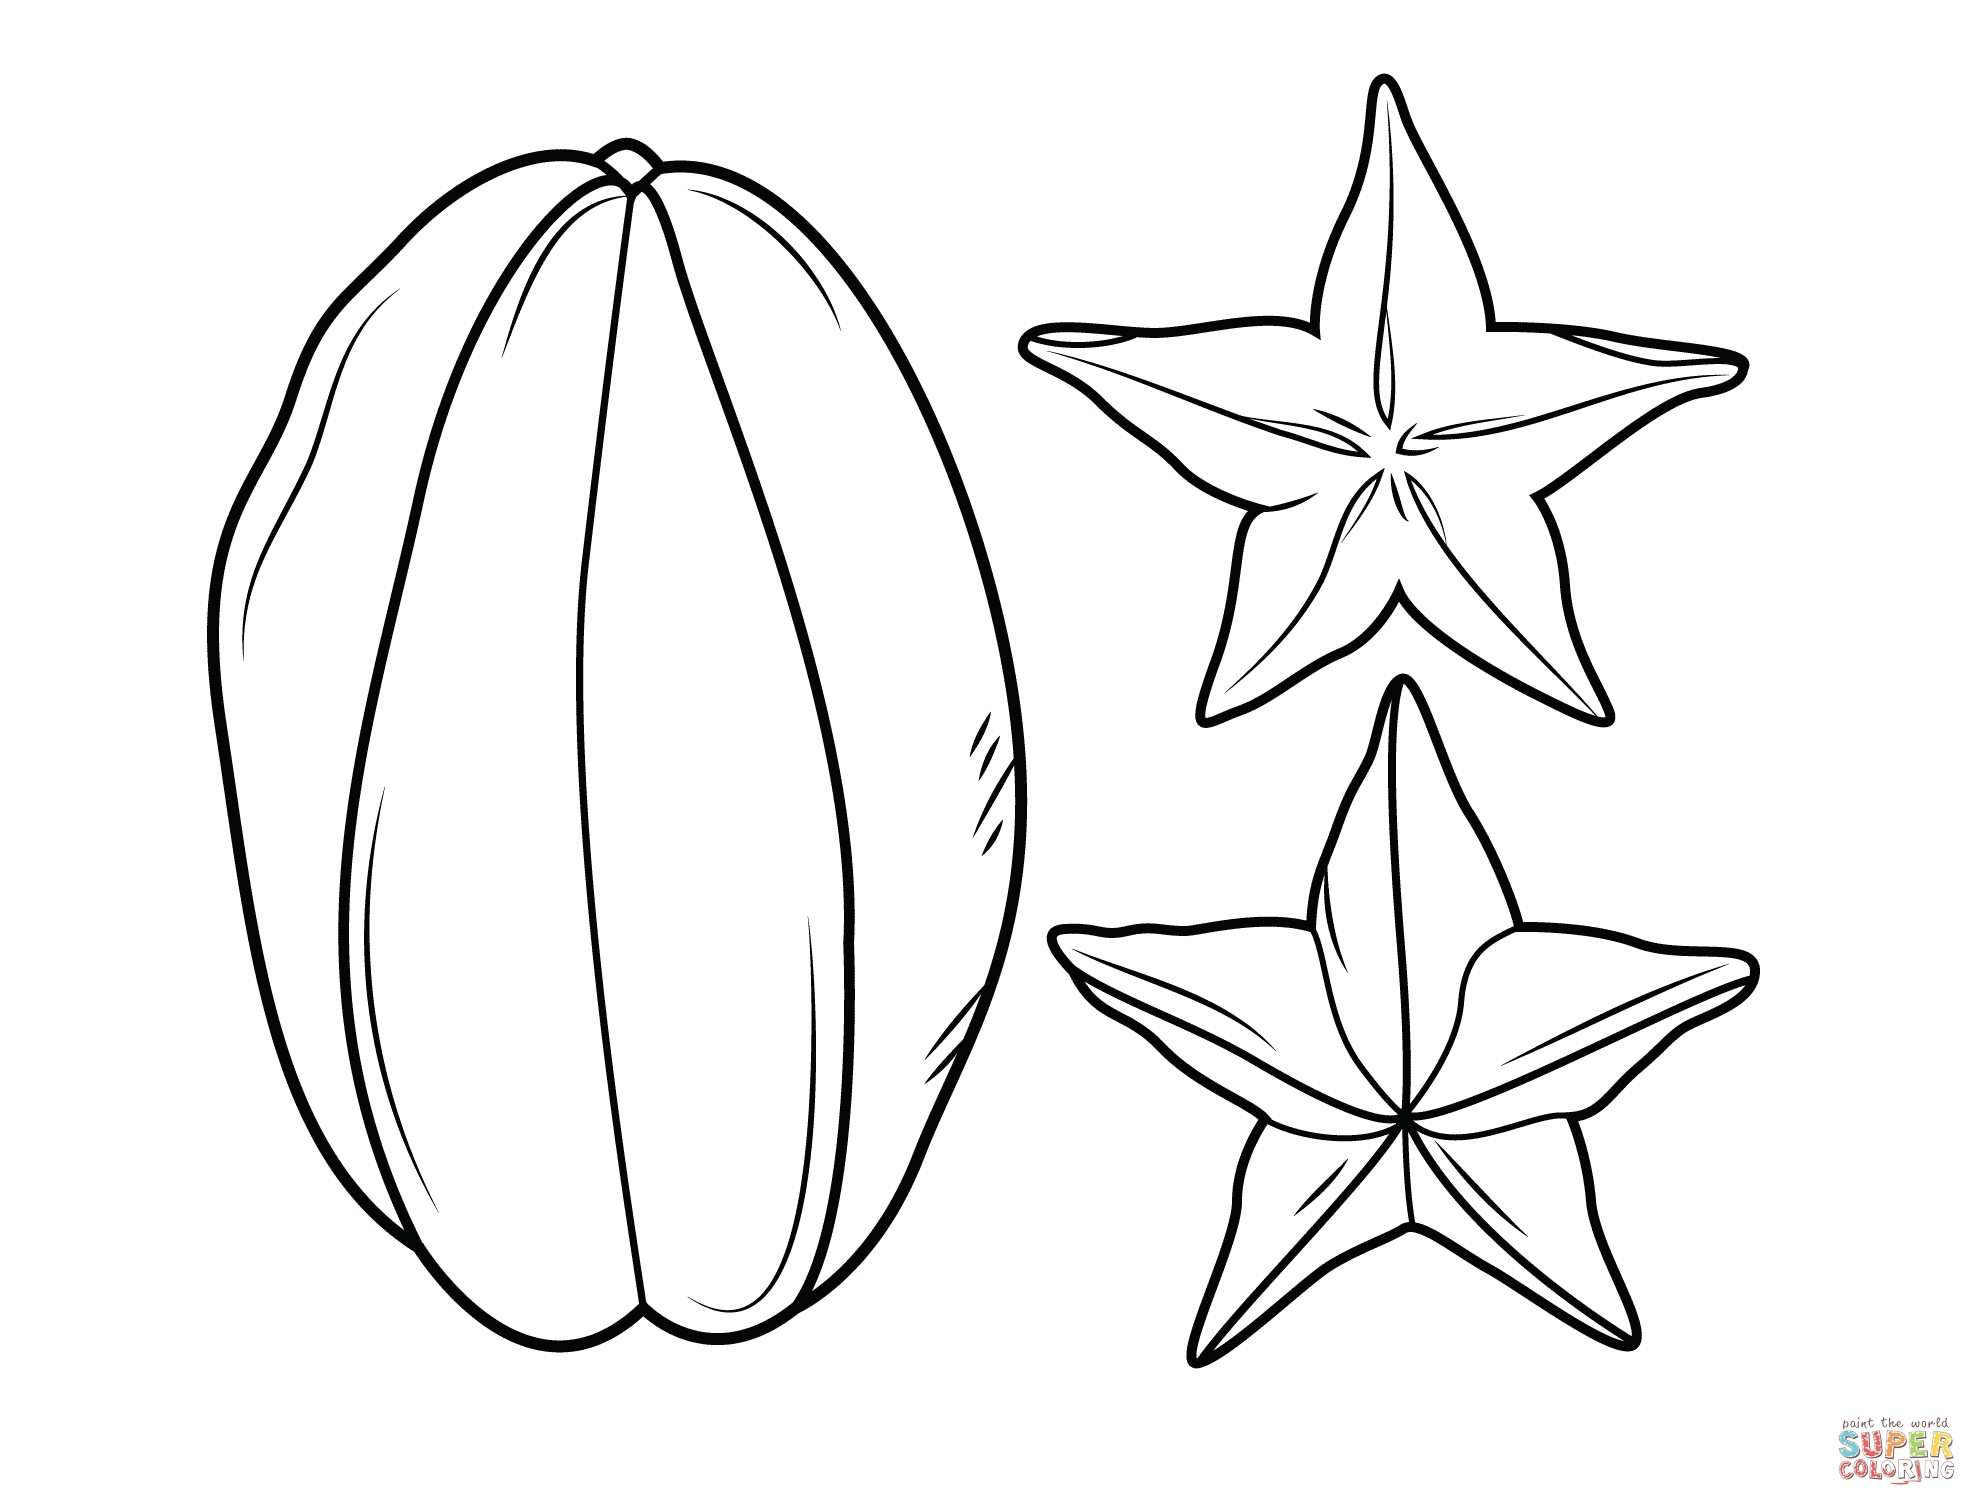 1977x1506 Mango Fruits Coloring Pages For Kids Lovely Mango Drawing For Kids